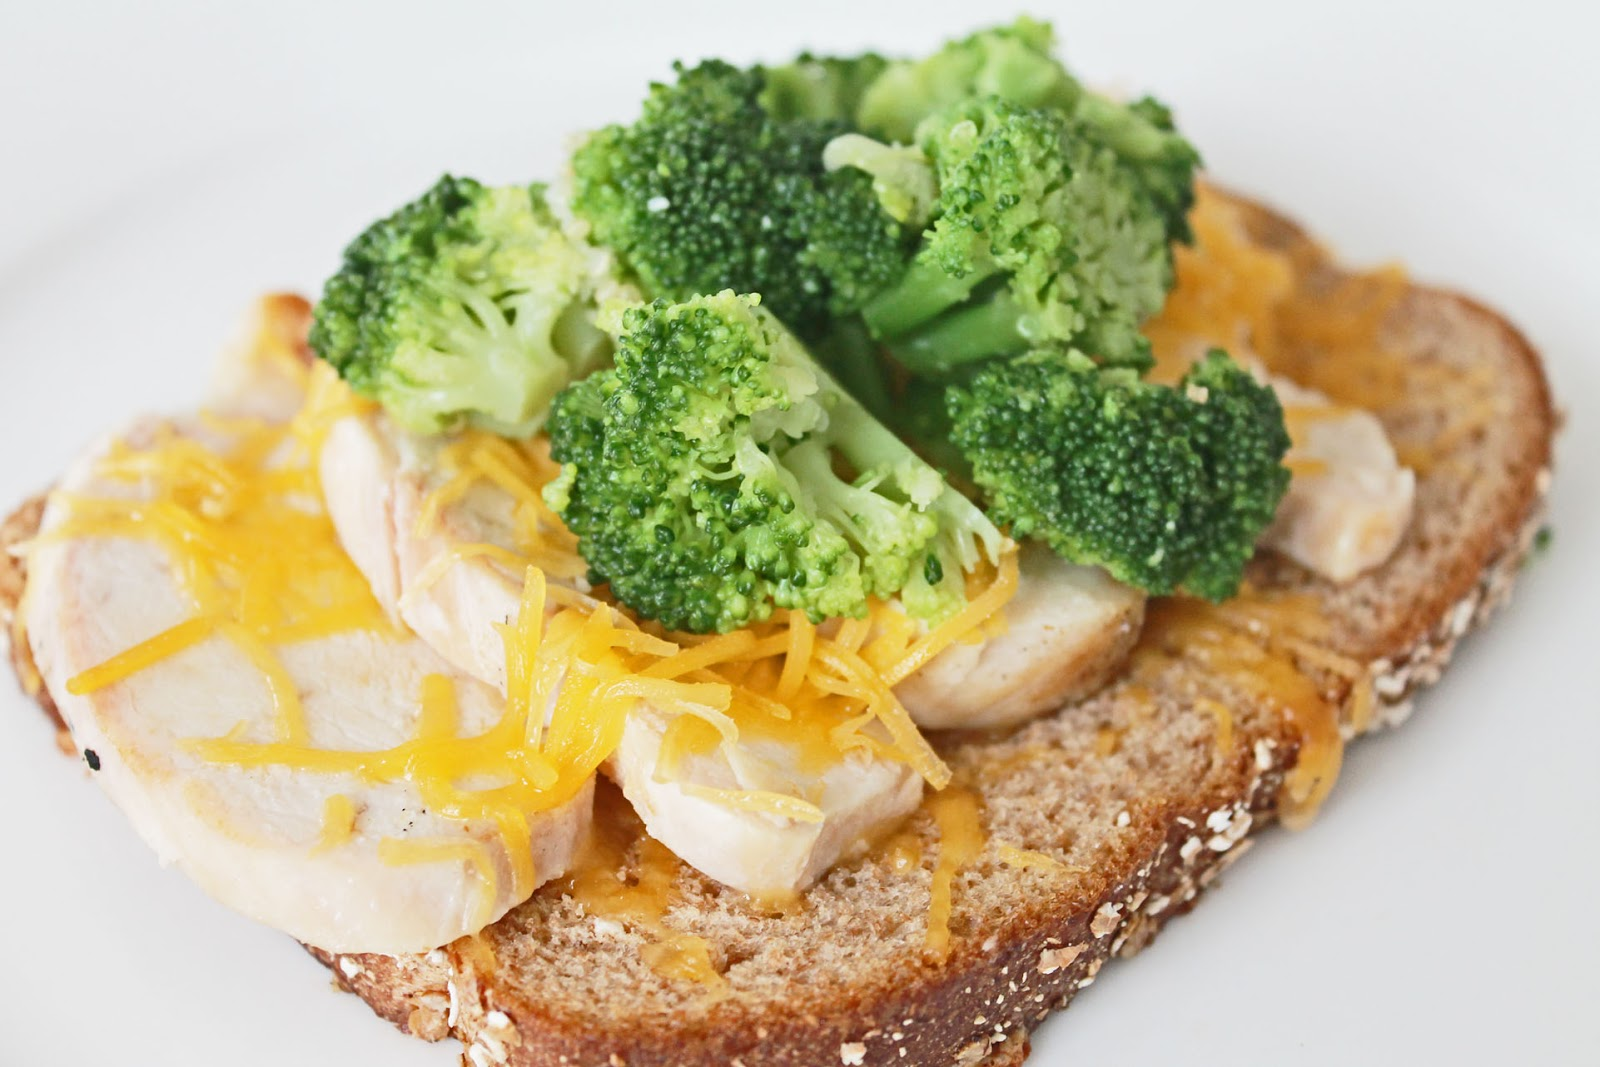 Chicken And Broccoli Healthy Meal